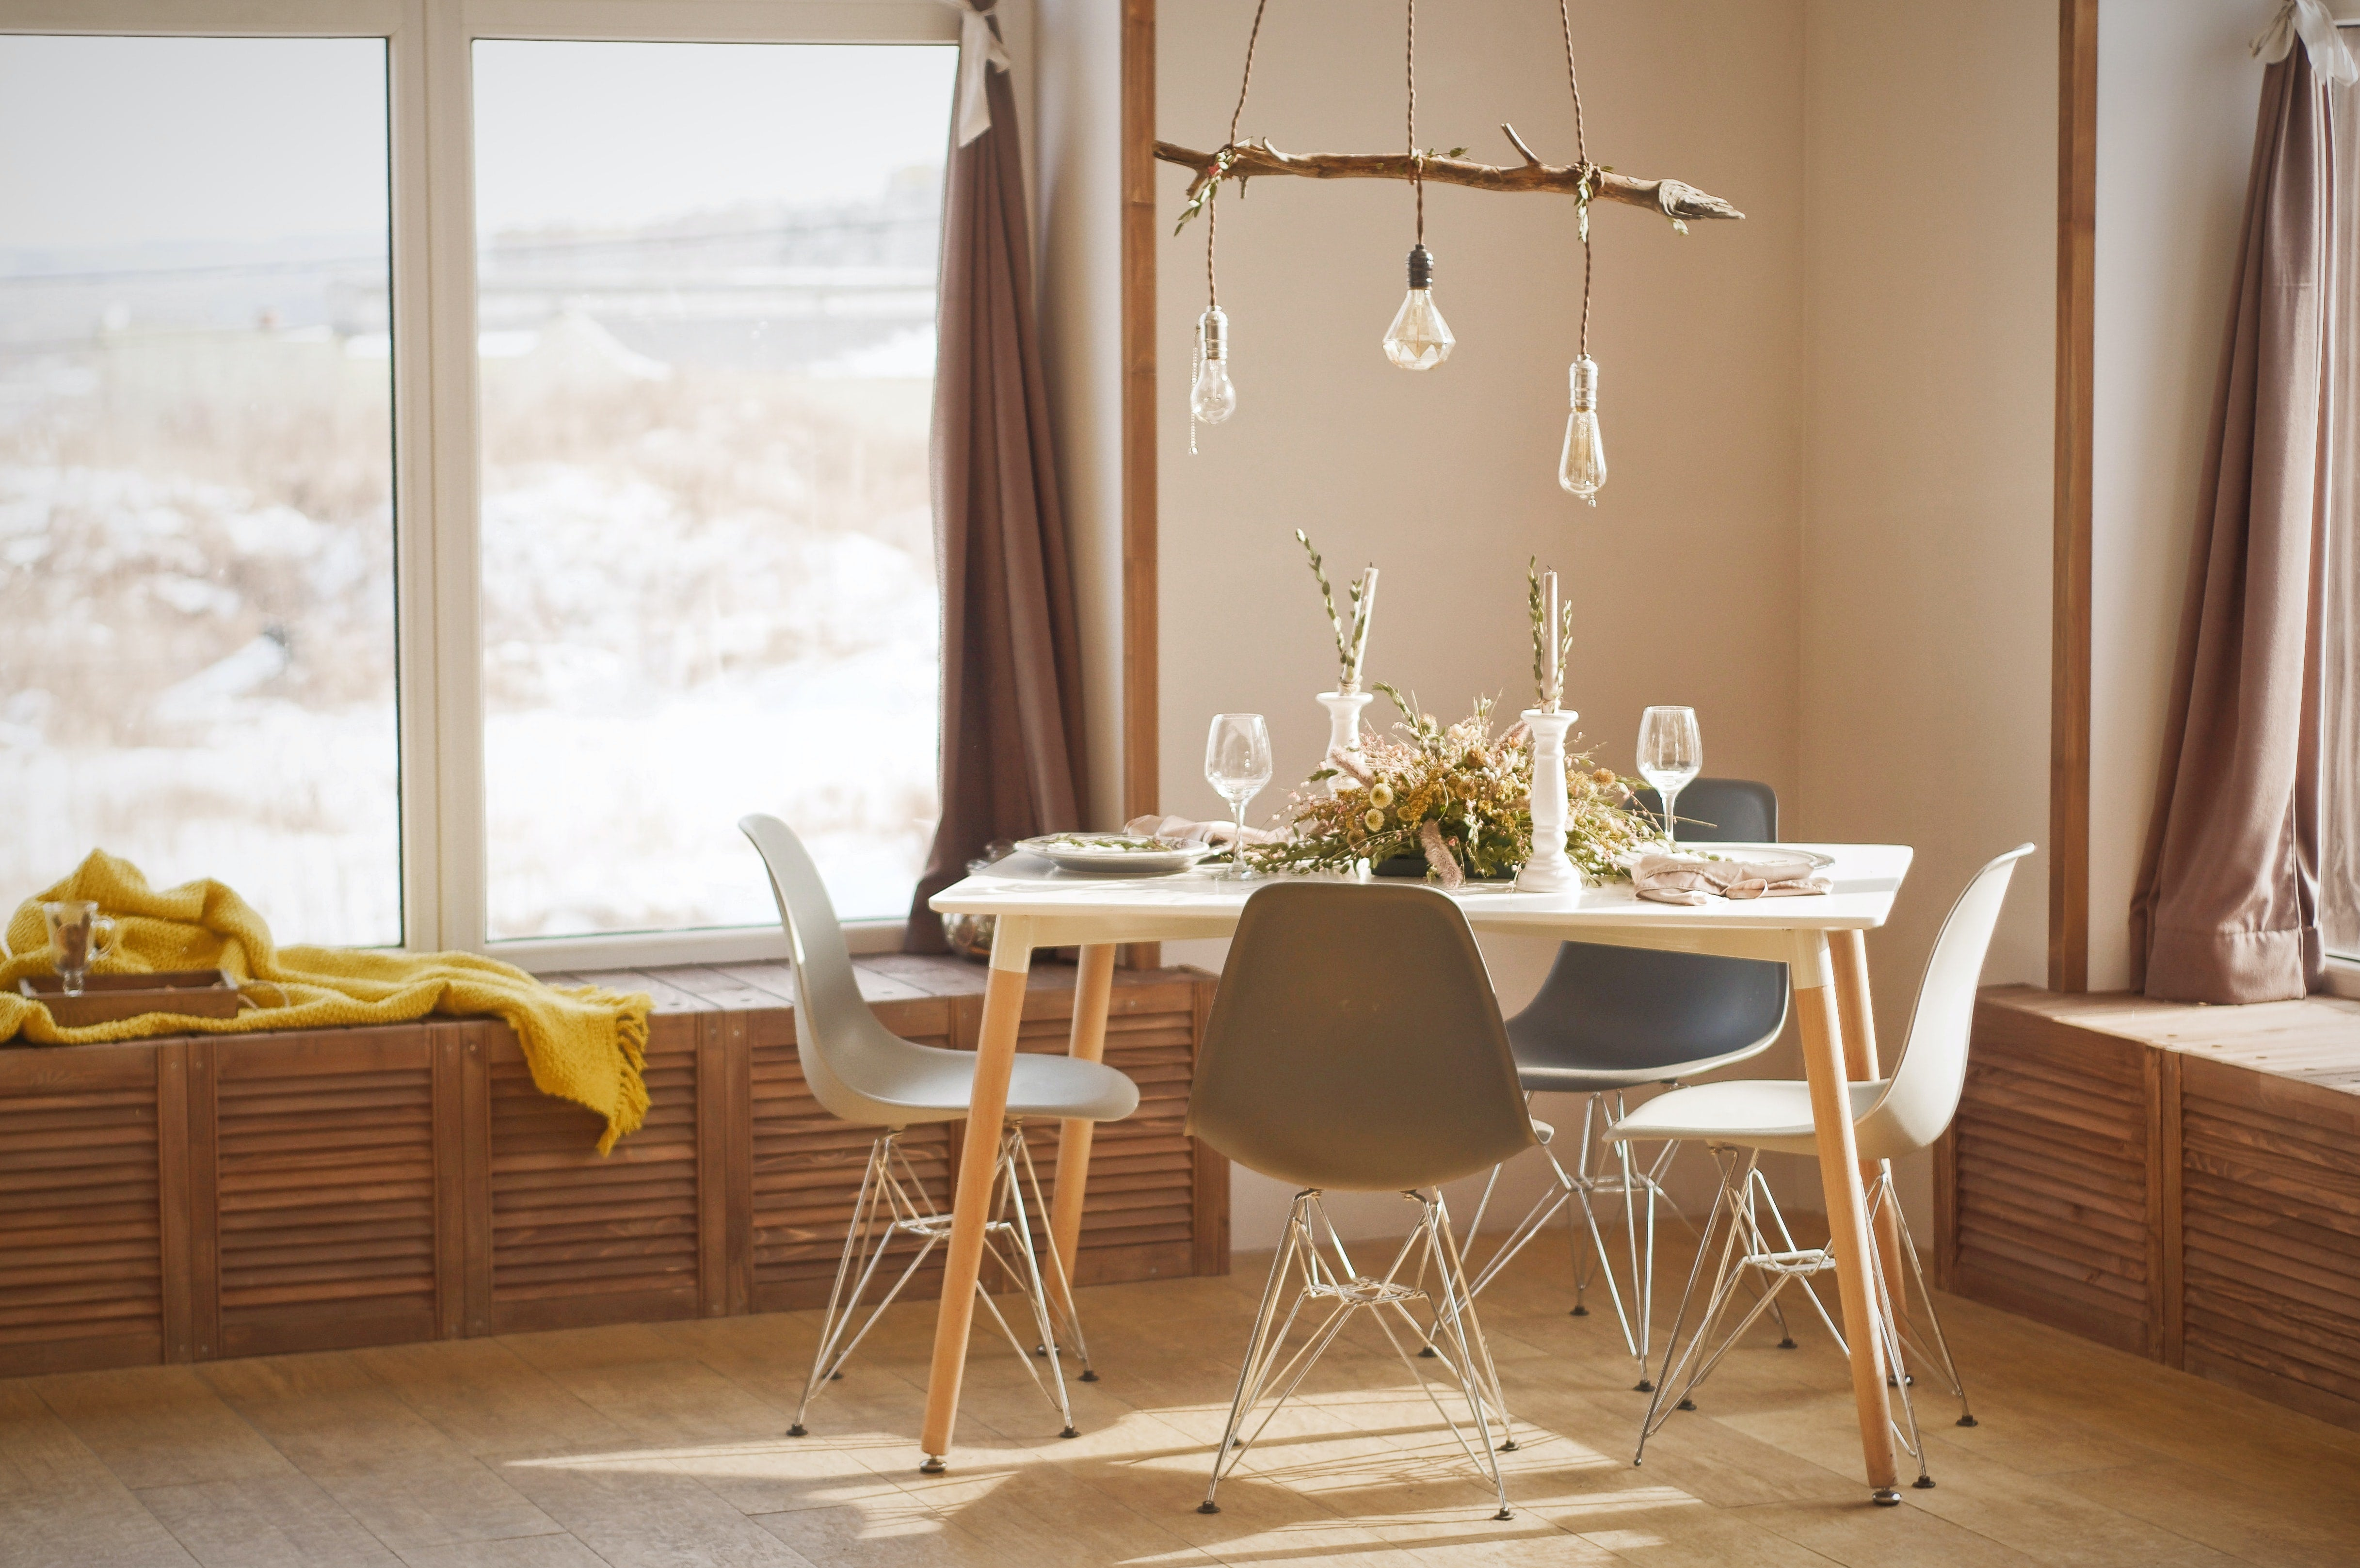 5 ways to brighten your home this winter